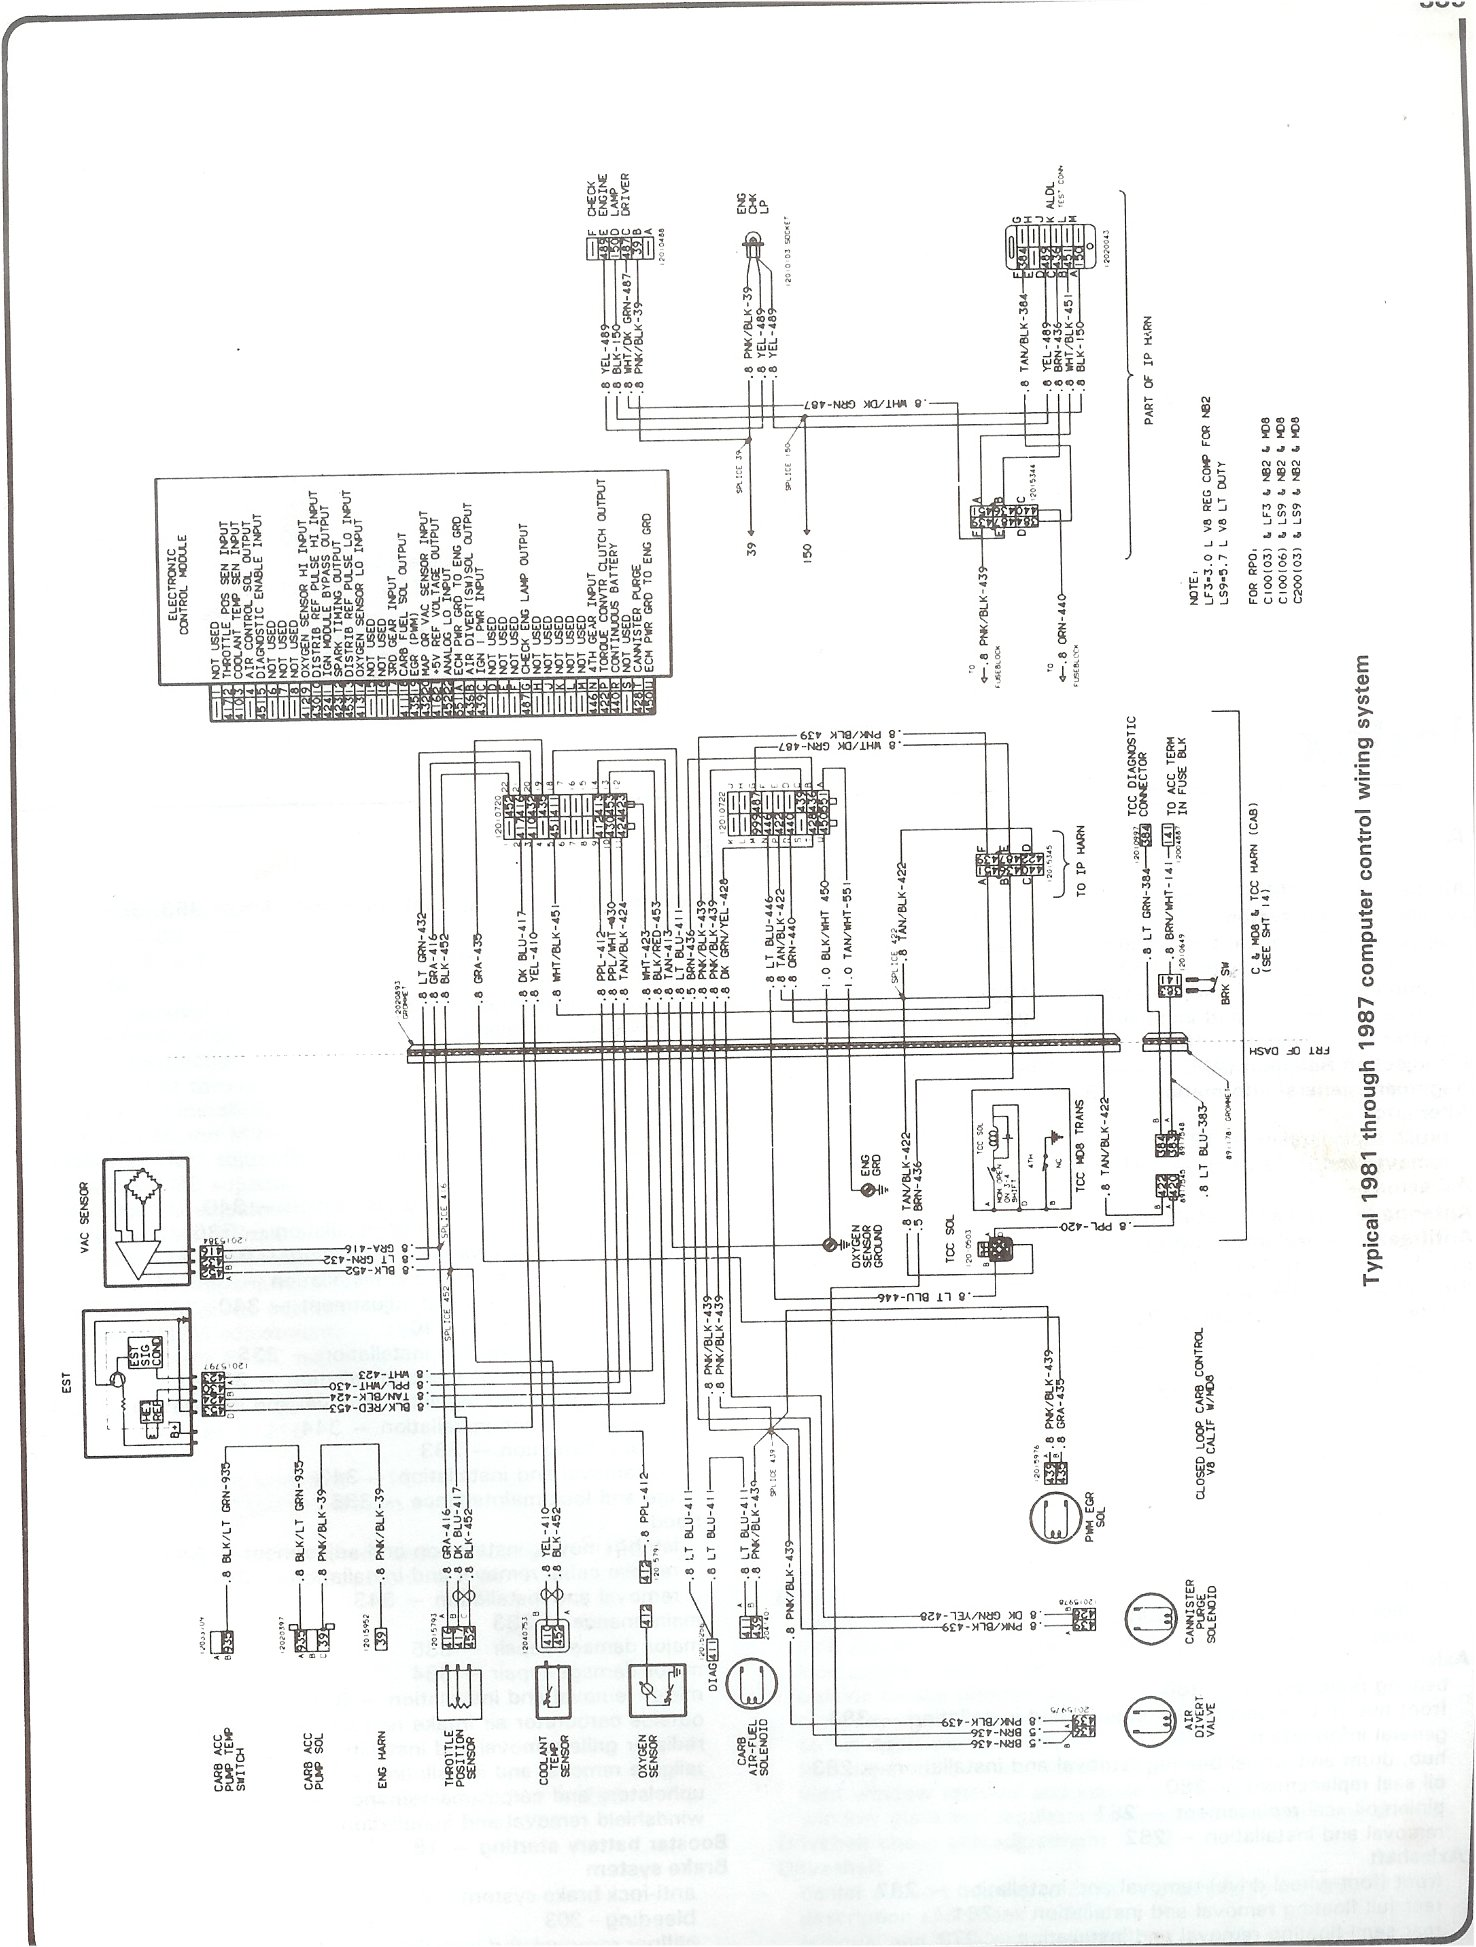 87 Chevy Fuse Diagram Reinvent Your Wiring Roadstar Caravan Complete 73 Diagrams Rh Forum 87chevytrucks Com 1987 S10 Box